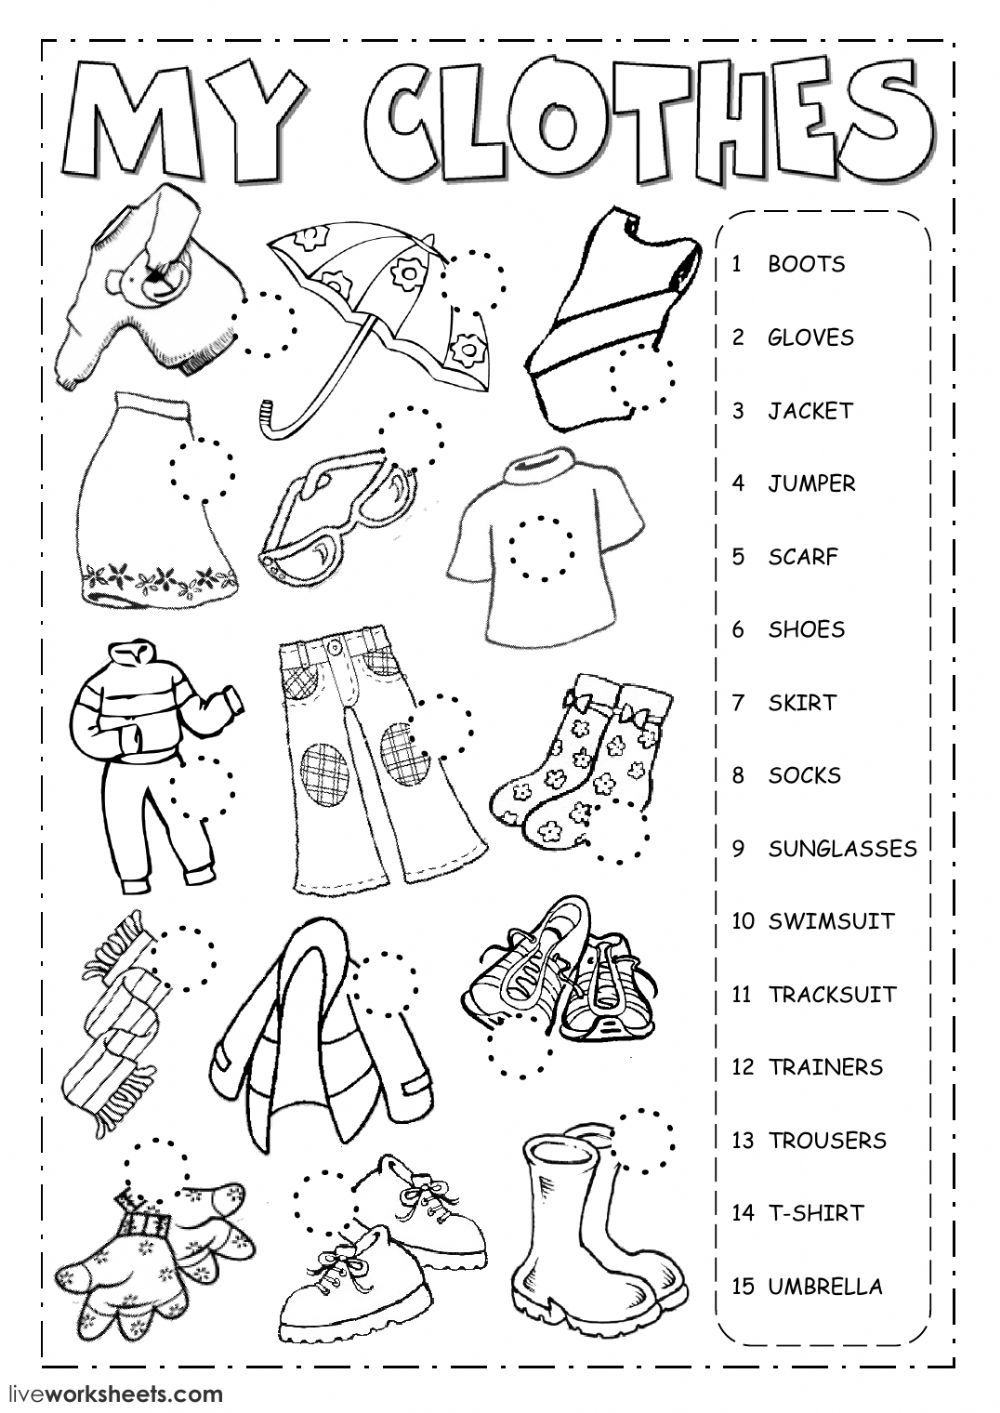 The Clothes English As A Second Language Esl Worksheet